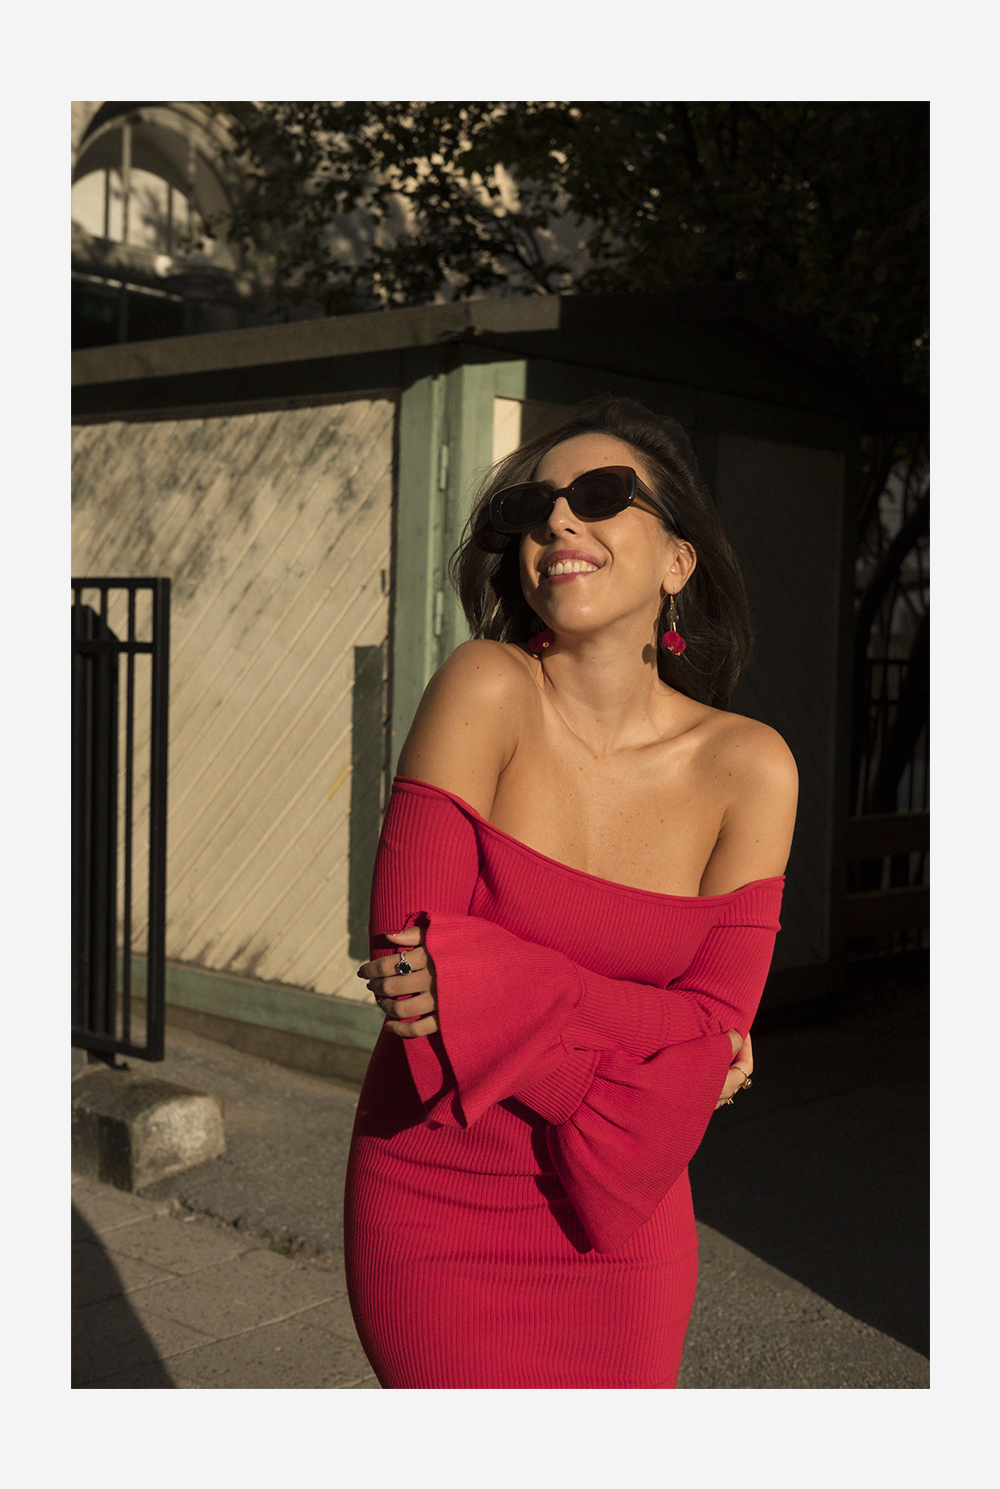 sania claus demina red dress gina tricot off shoulder dior shoes asos sunglasses_4